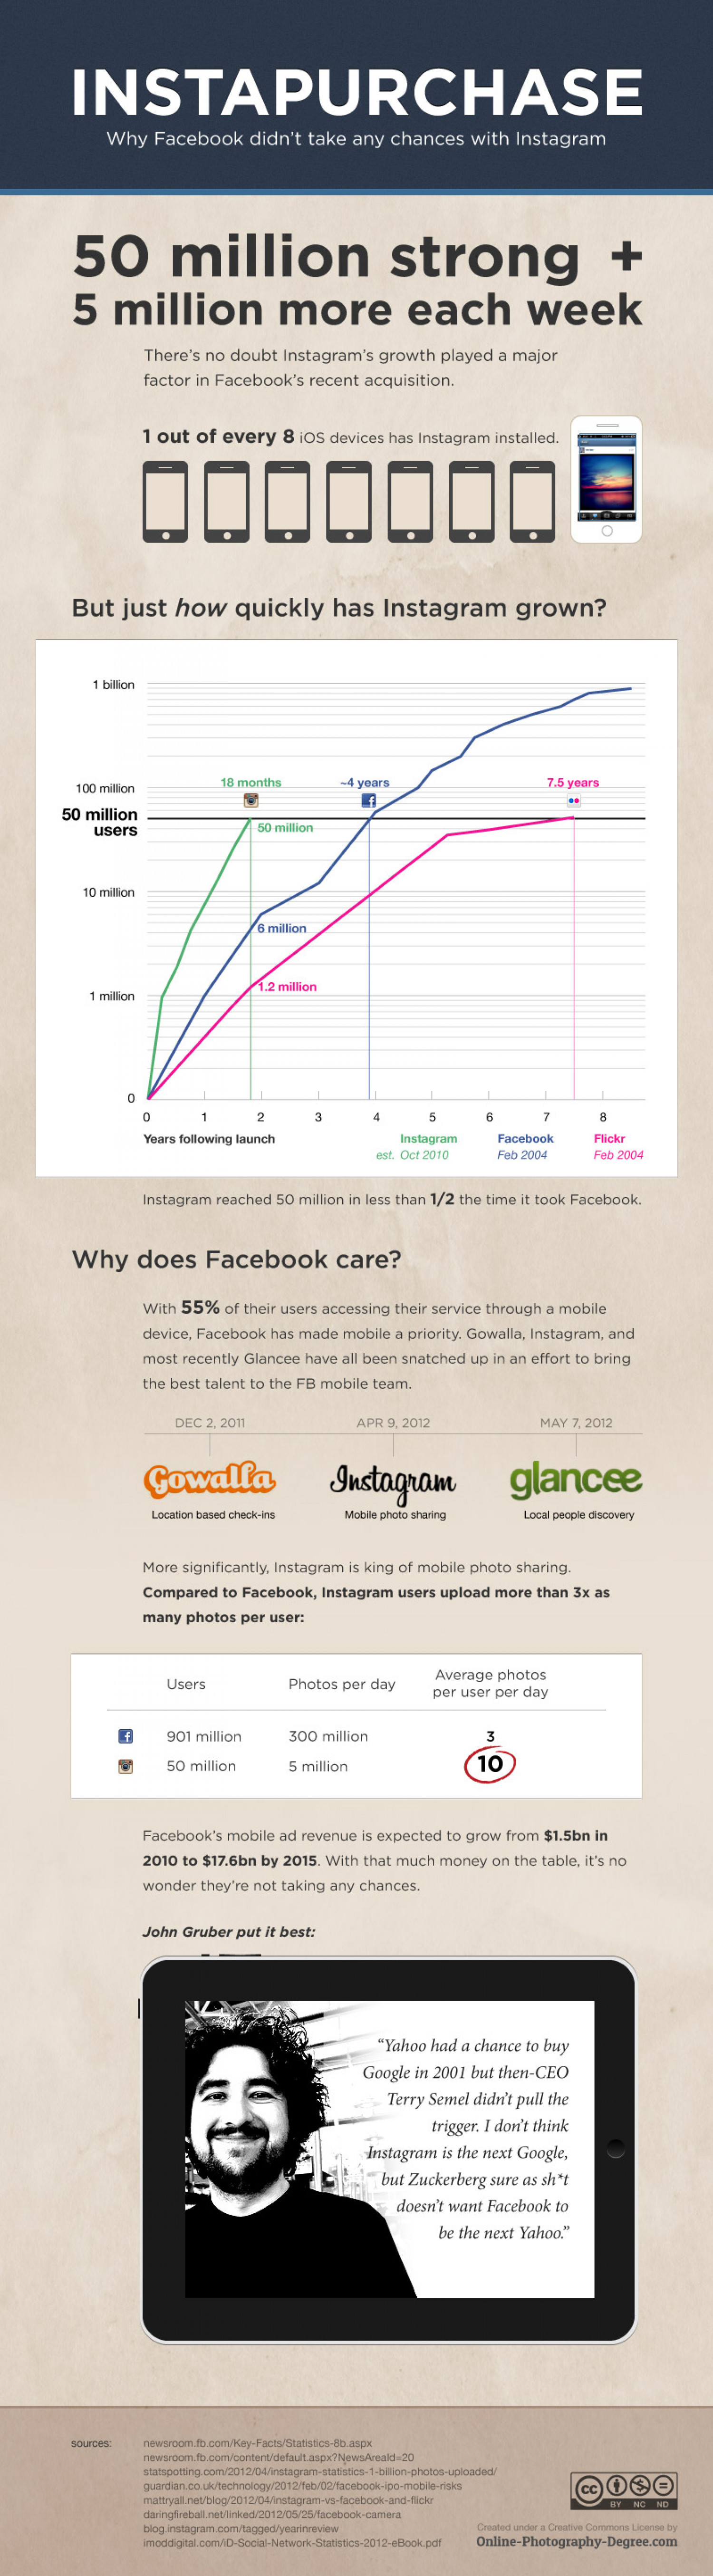 Instapurchase - Why Facebook Didn't Take Any Chances With Instagram Infographic